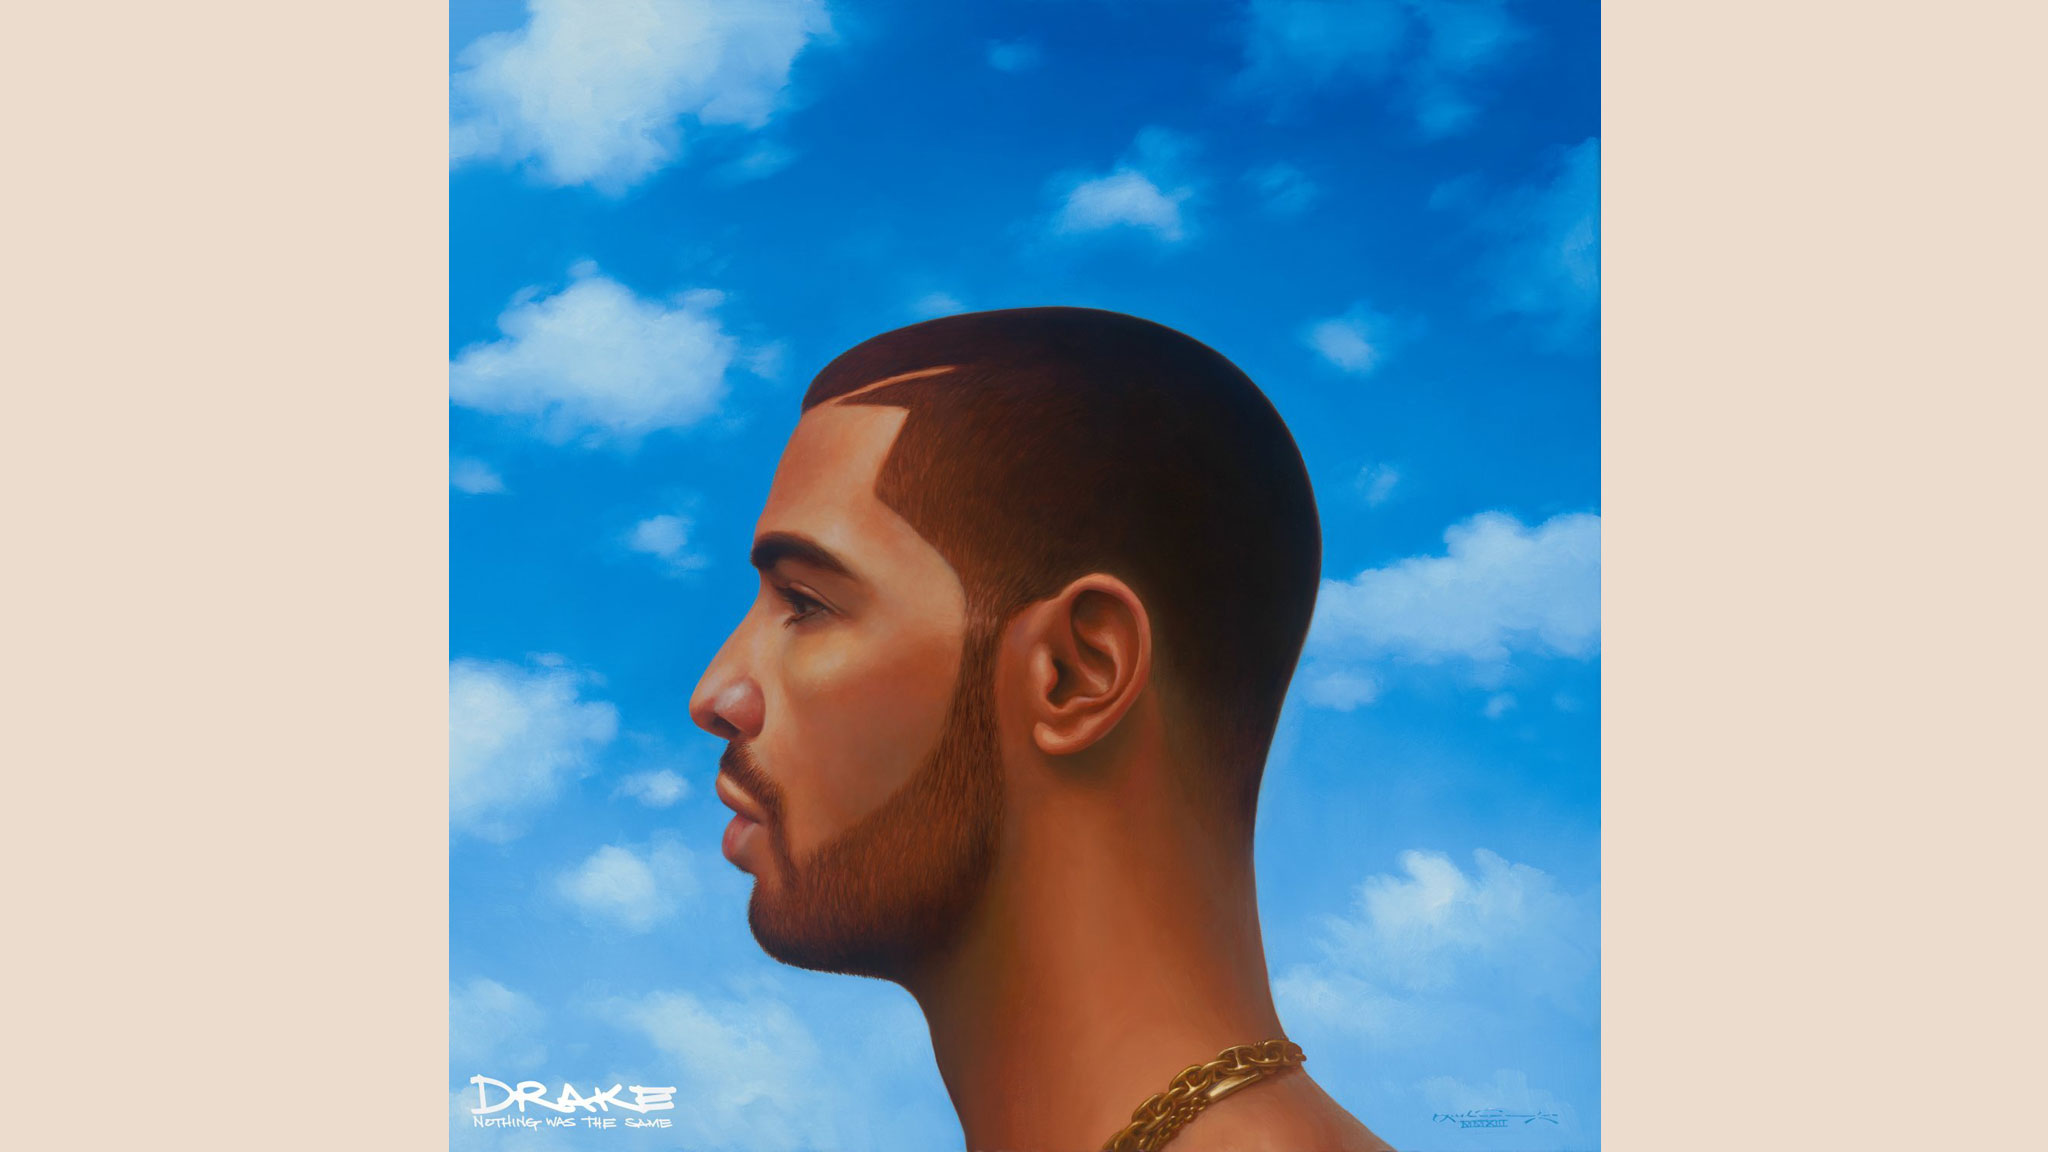 Drake Nothing Was The Same Financial Times